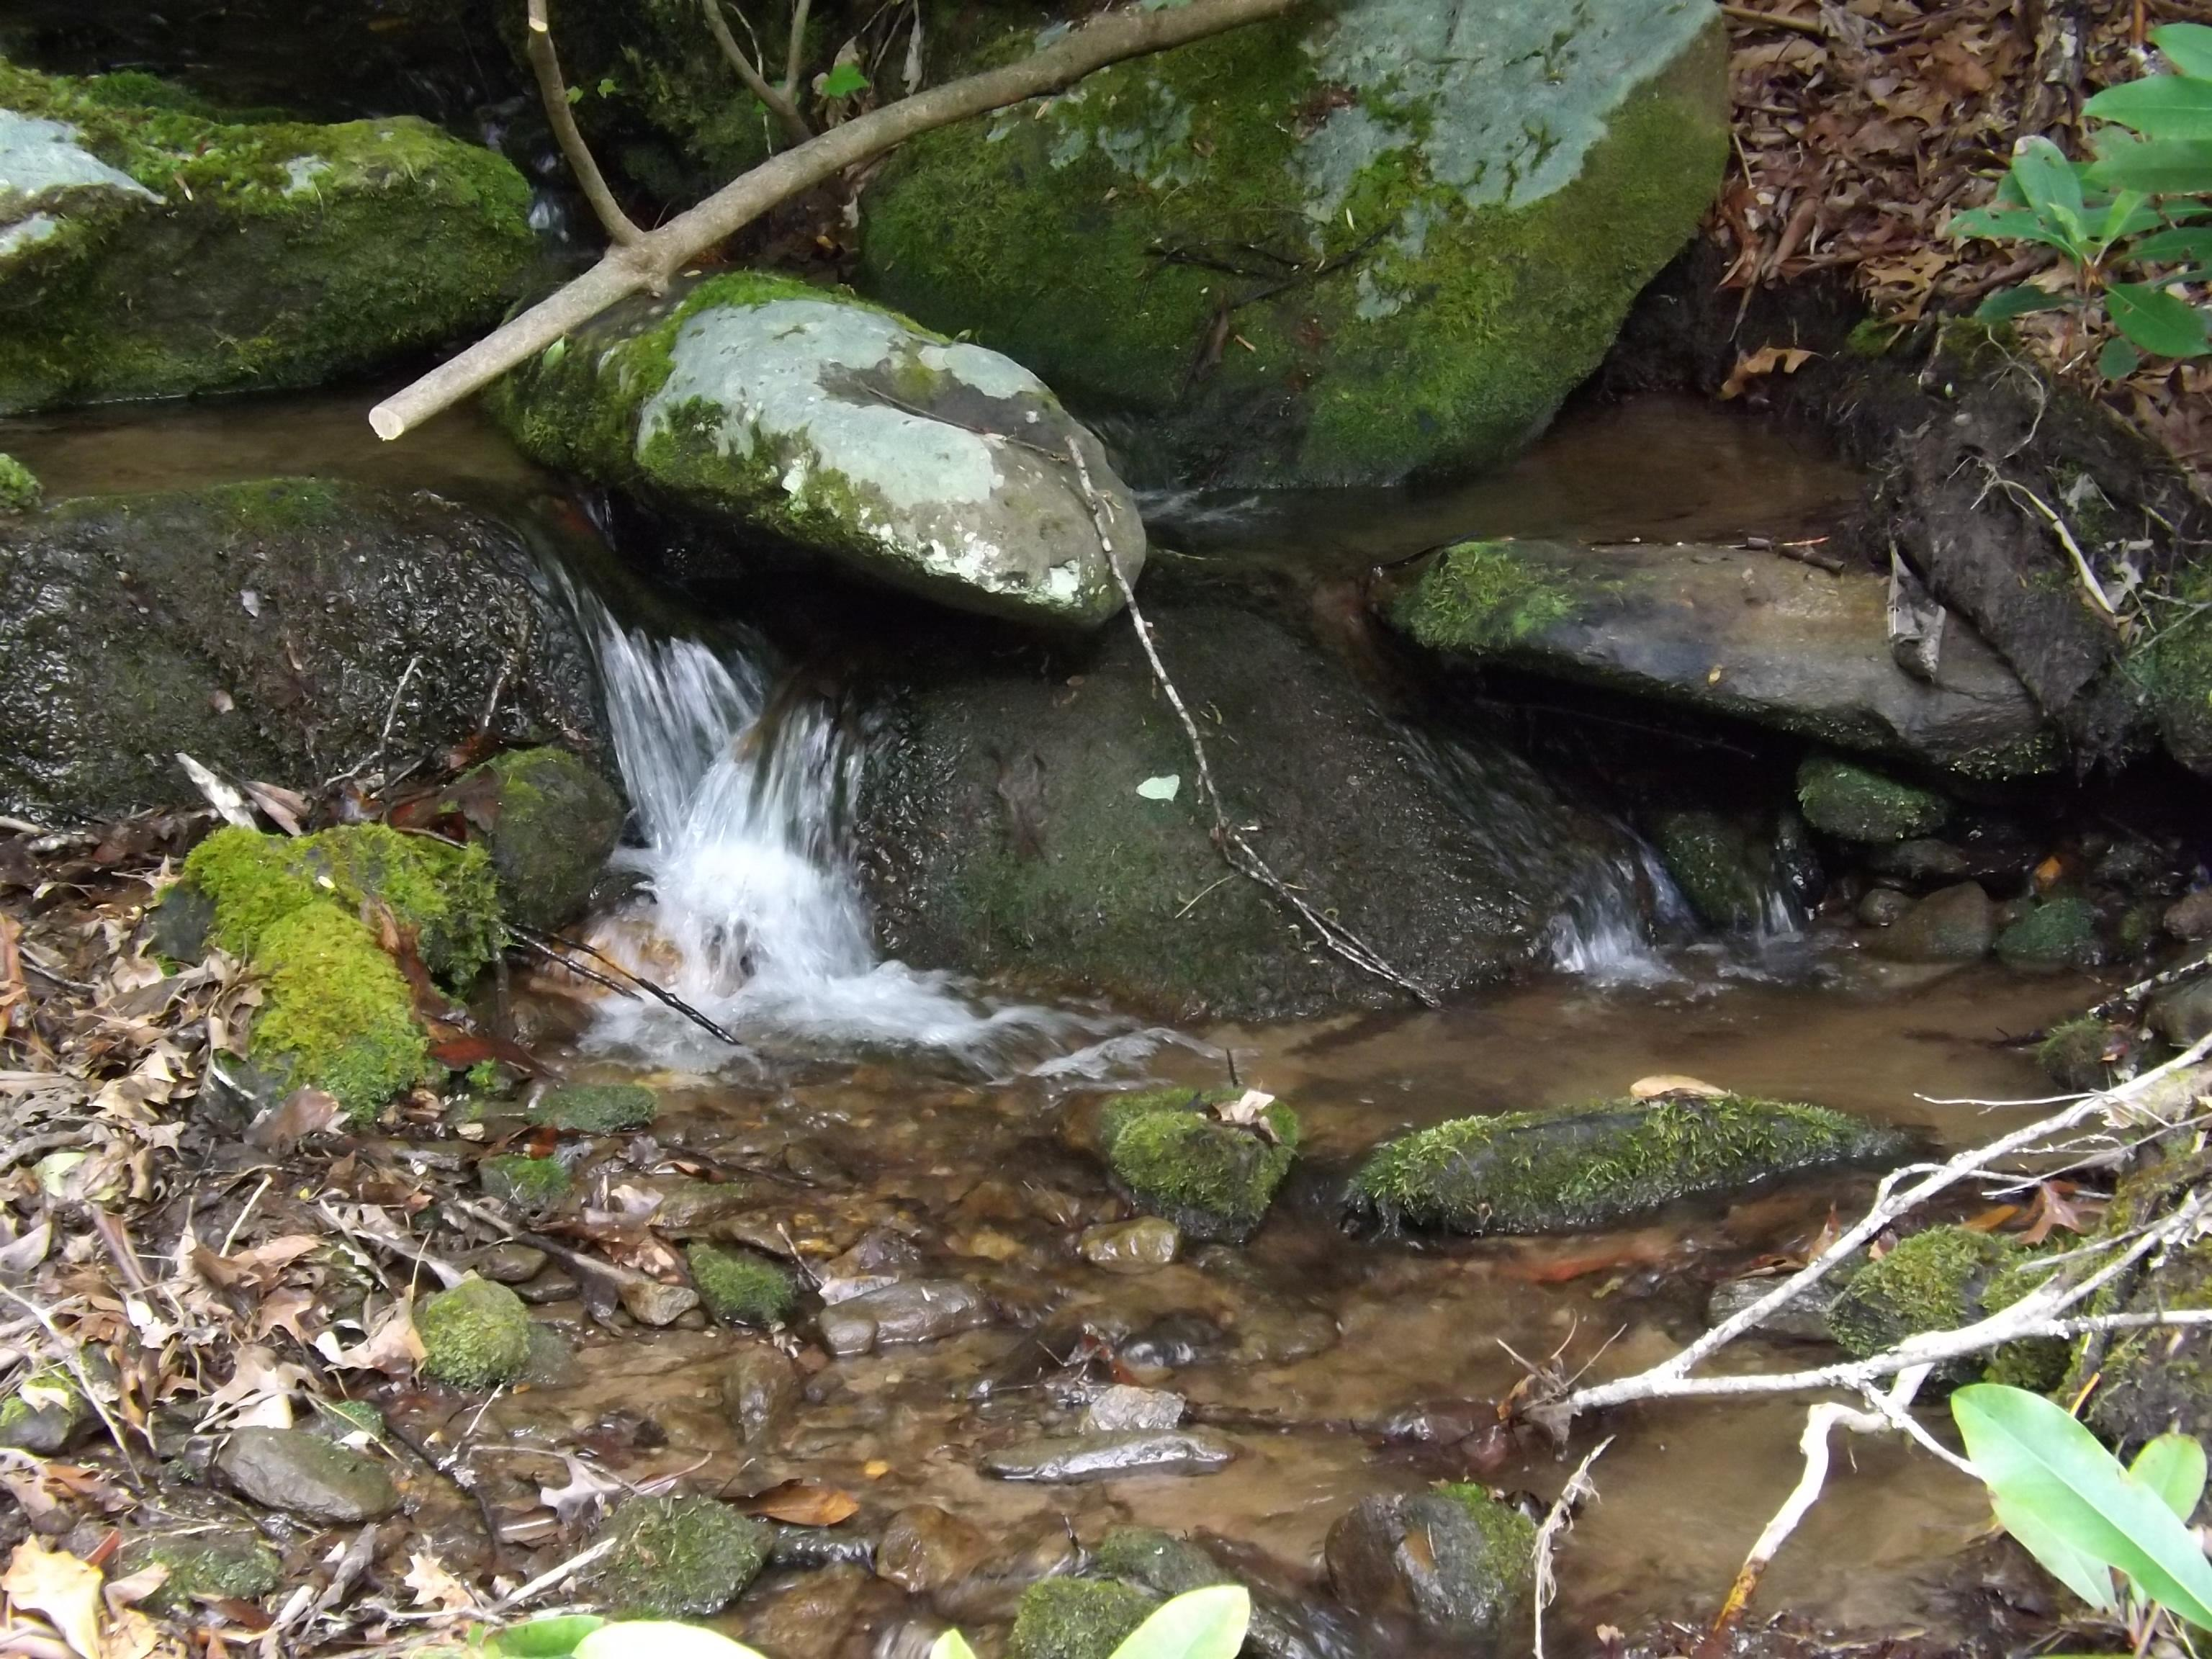 Creek sounds are ever present and soothing!